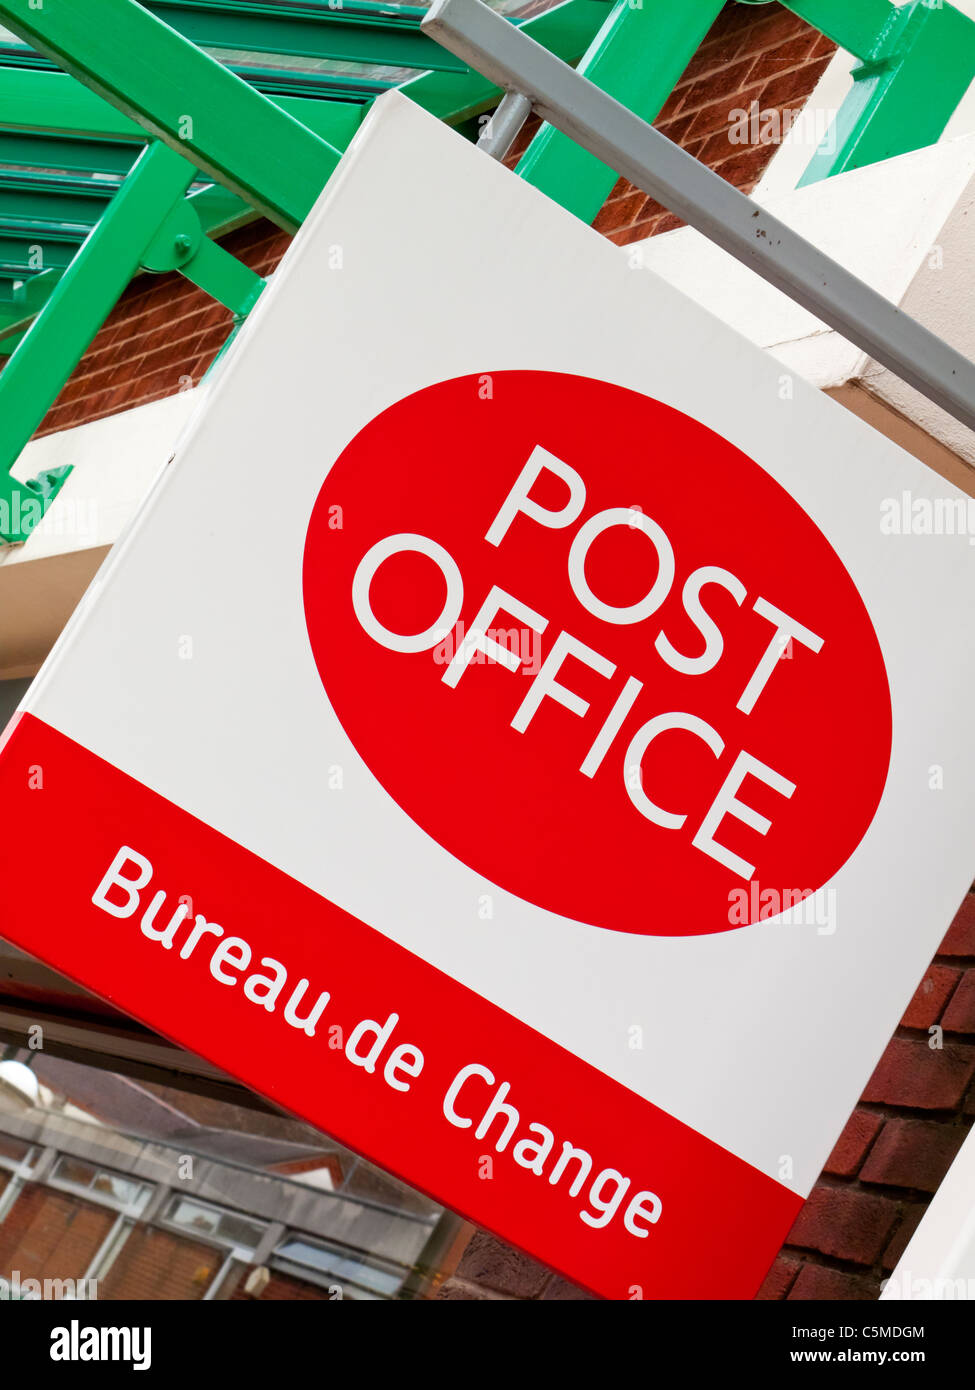 sign outside a post office and bureau de change in